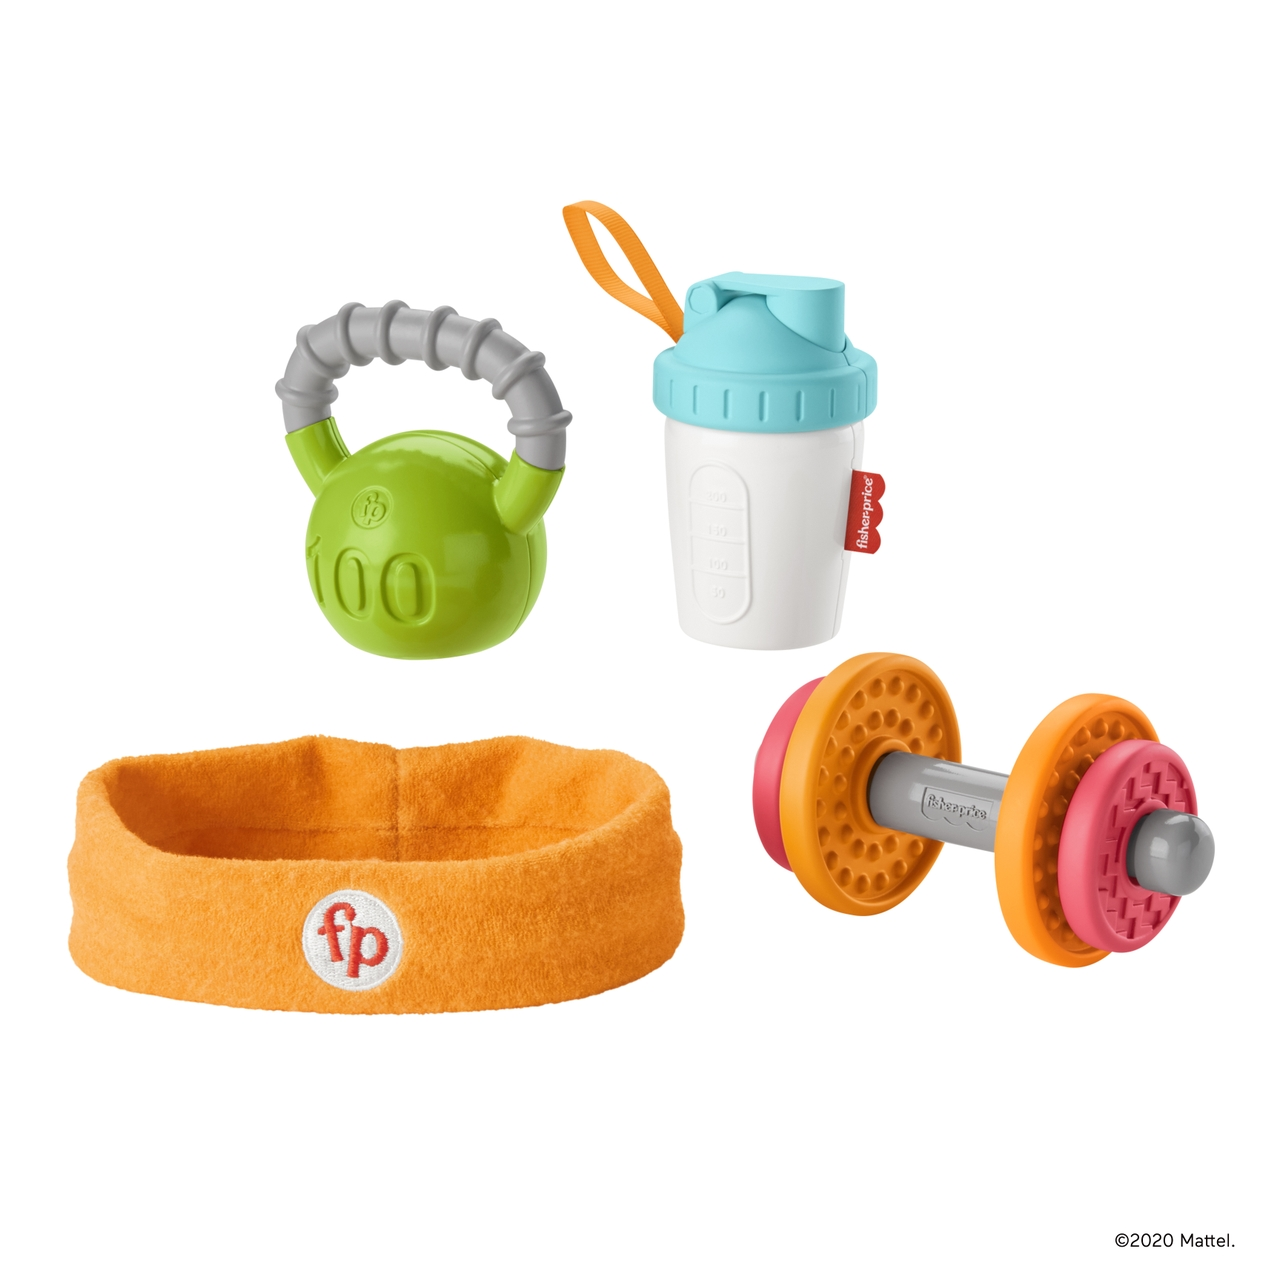 Fisher Price Introduces New Mini Me And Role Play Toys Inspired By Grown Up Activities Launches Work From Home Set For Preschoolers Mattel Inc